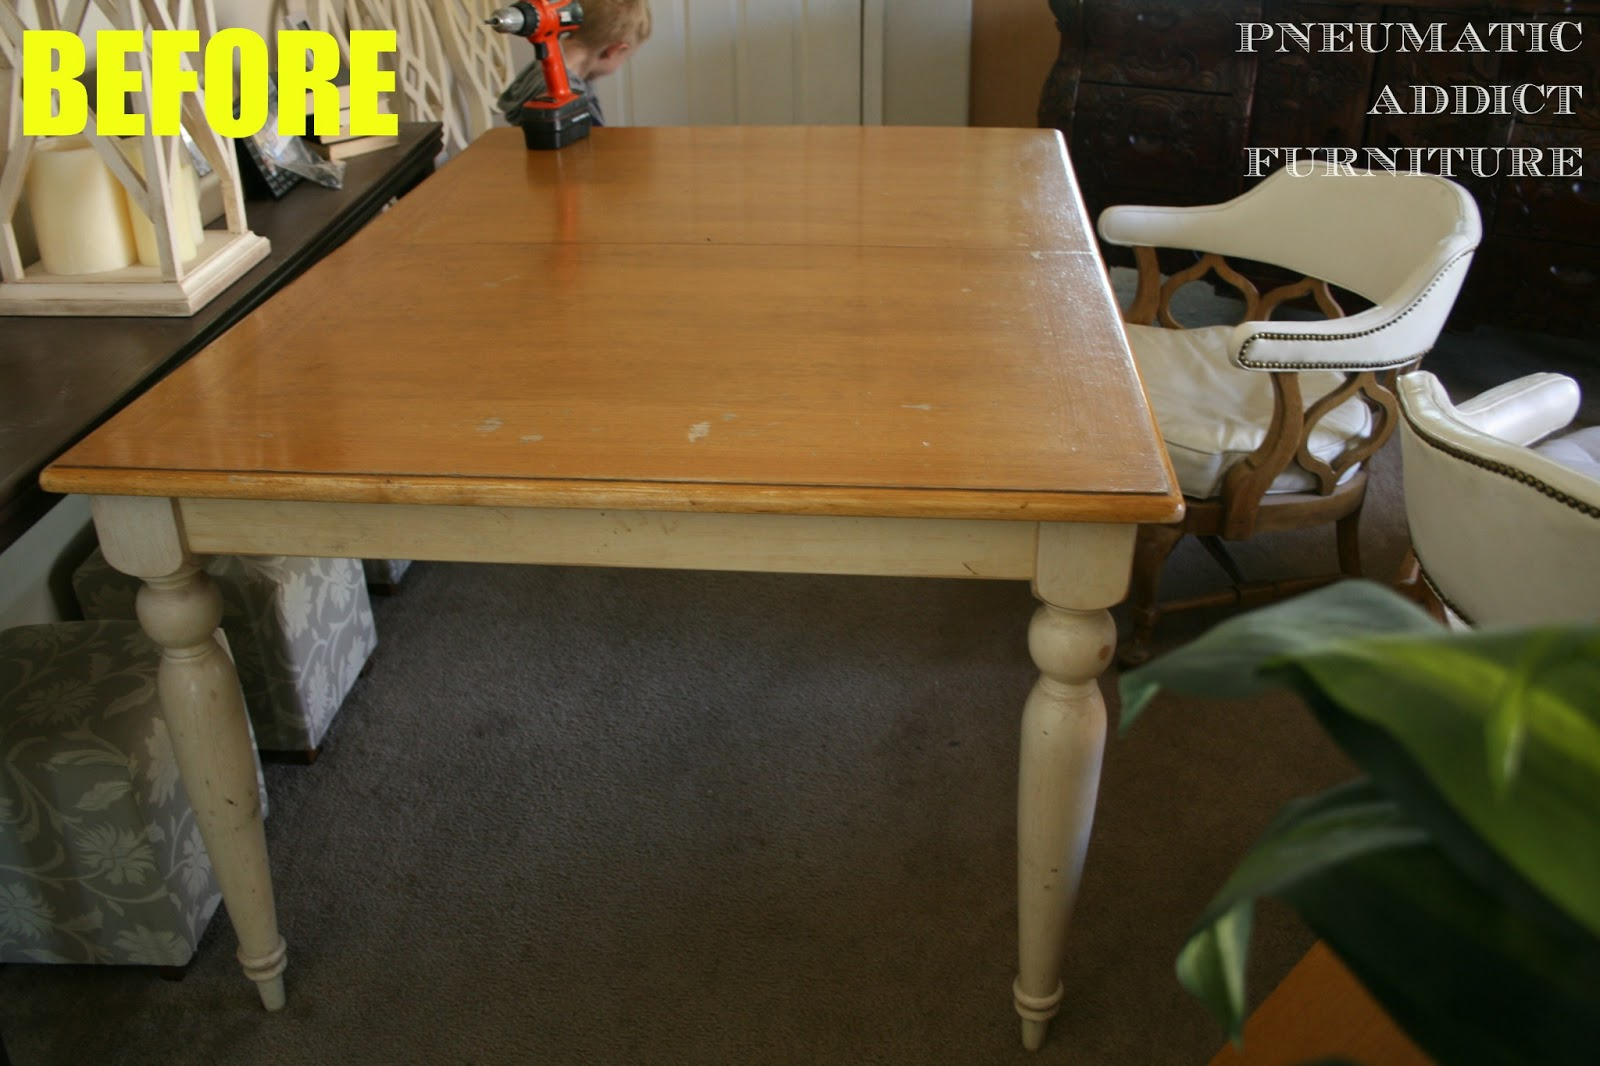 pneumatic addict : my kitchen table: before and afterand after